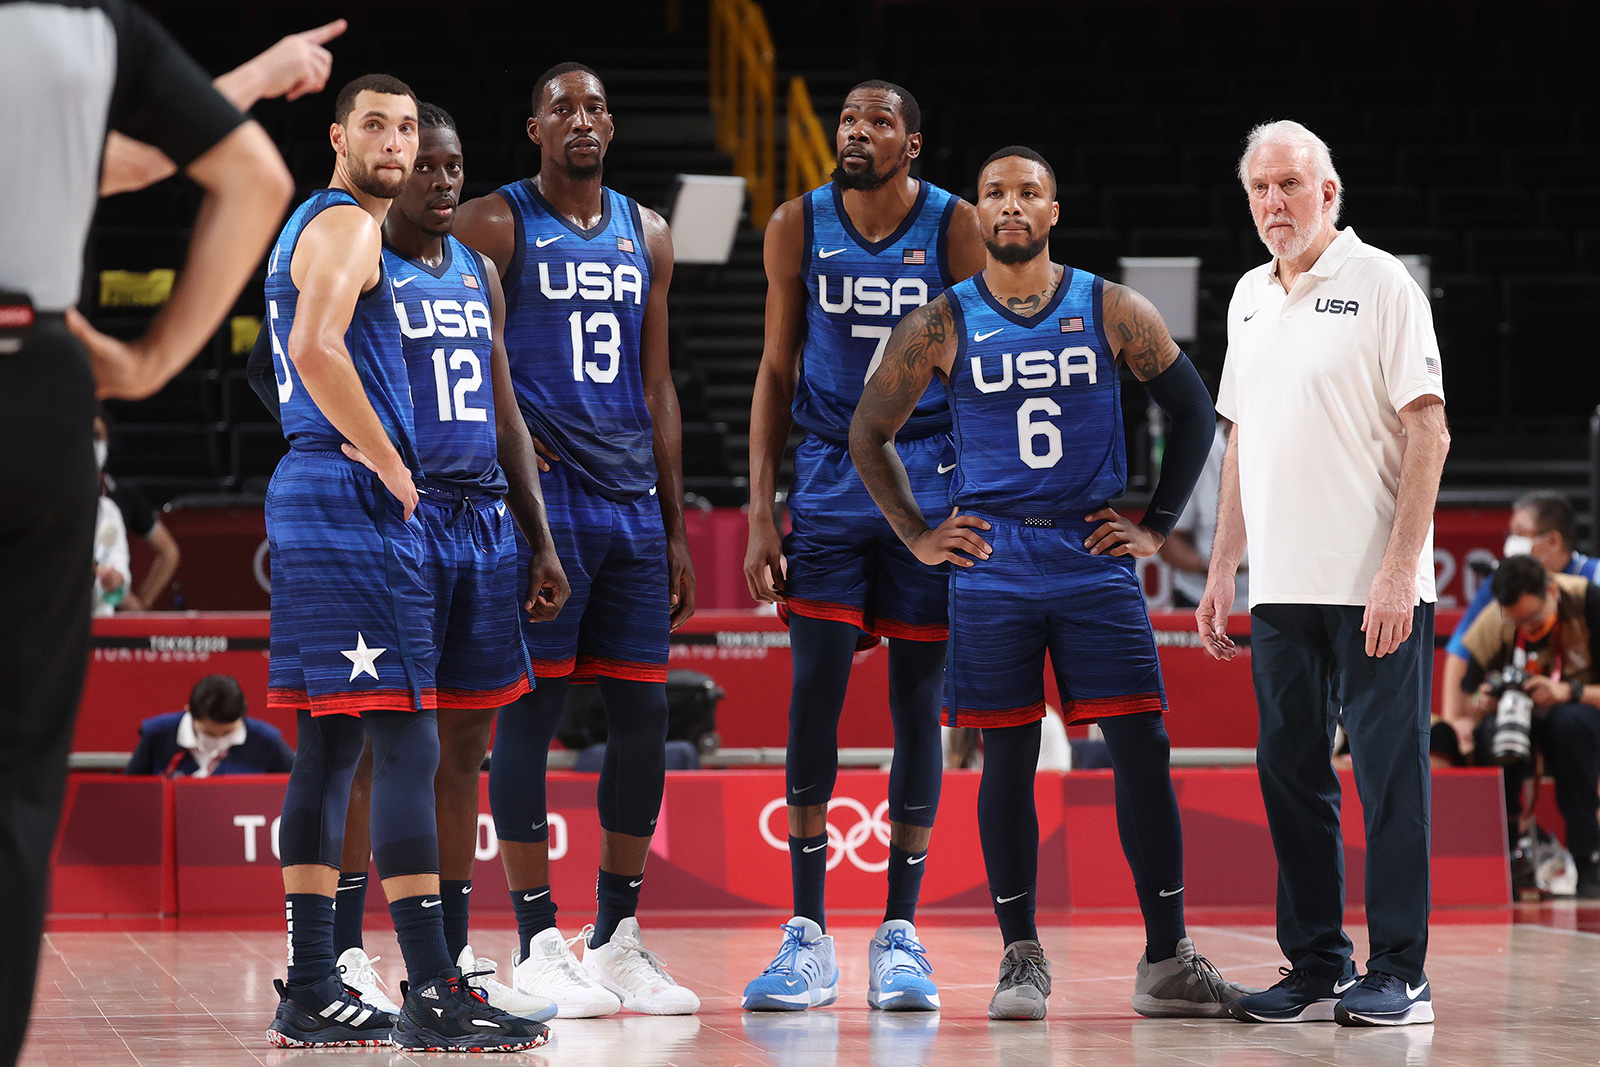 Zachary Lavine, Jrue Holiday, Bam Adebayo, Kevin Durant, Damian Lillard and Head Coach Gregg Popovich of Team USA during their game against France on Sunday, July 25.